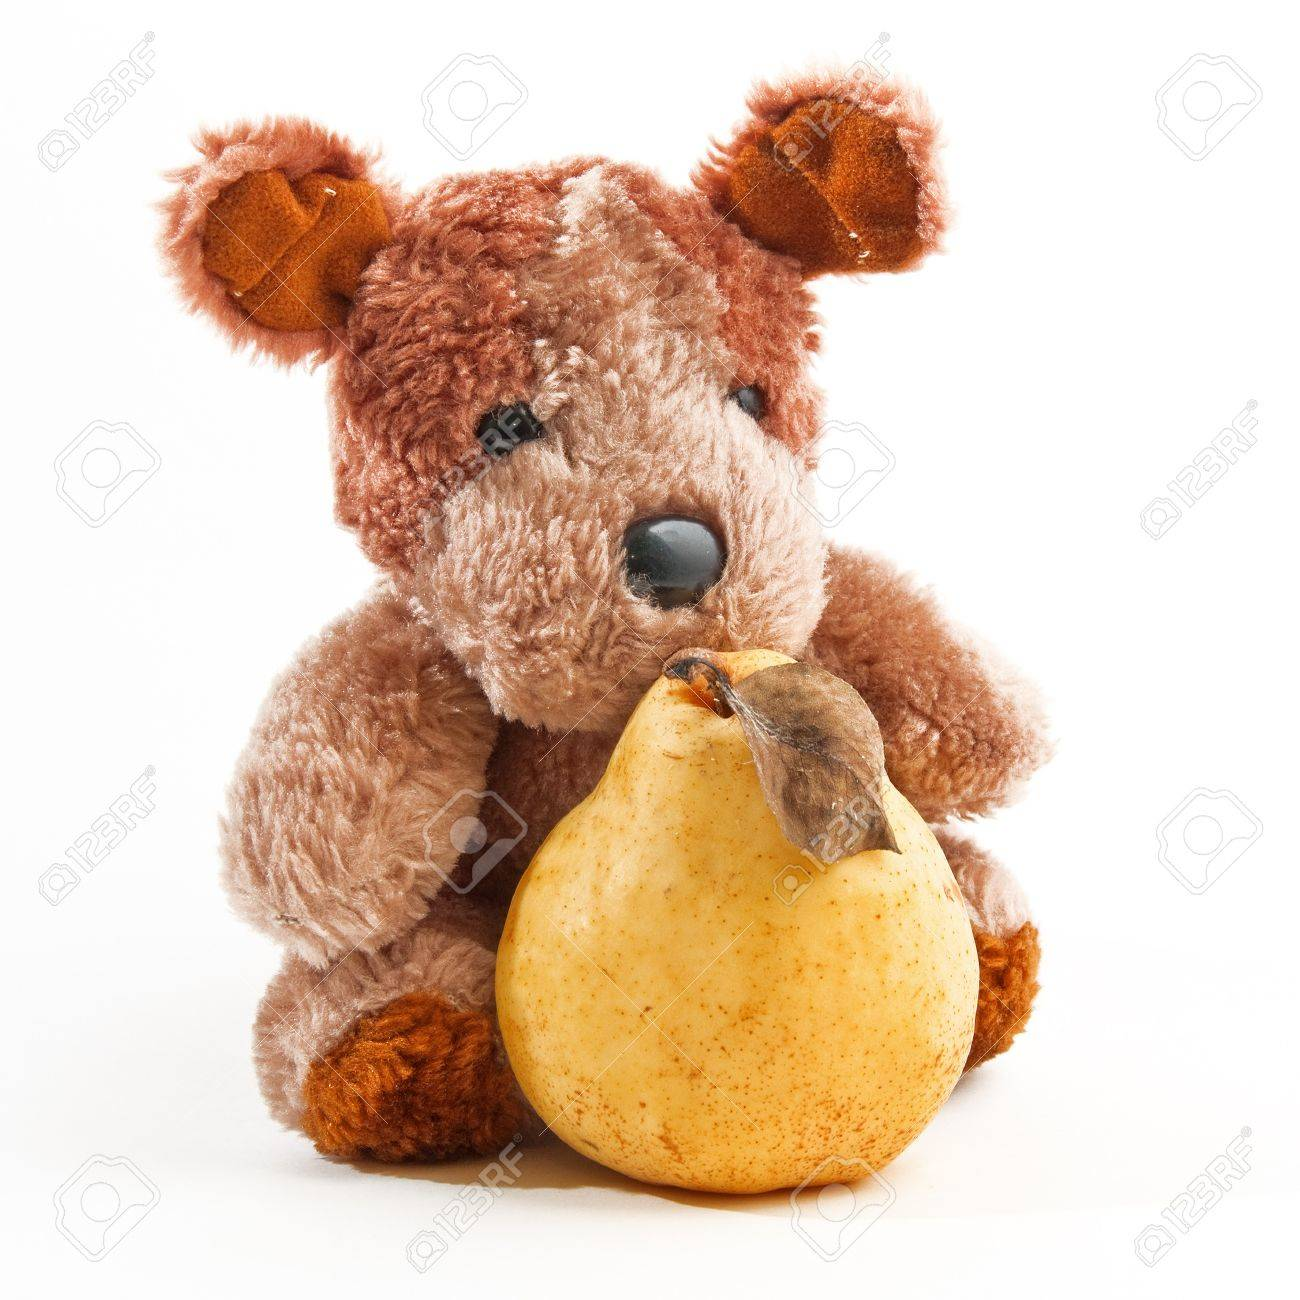 Image result for teddybear holding a pear